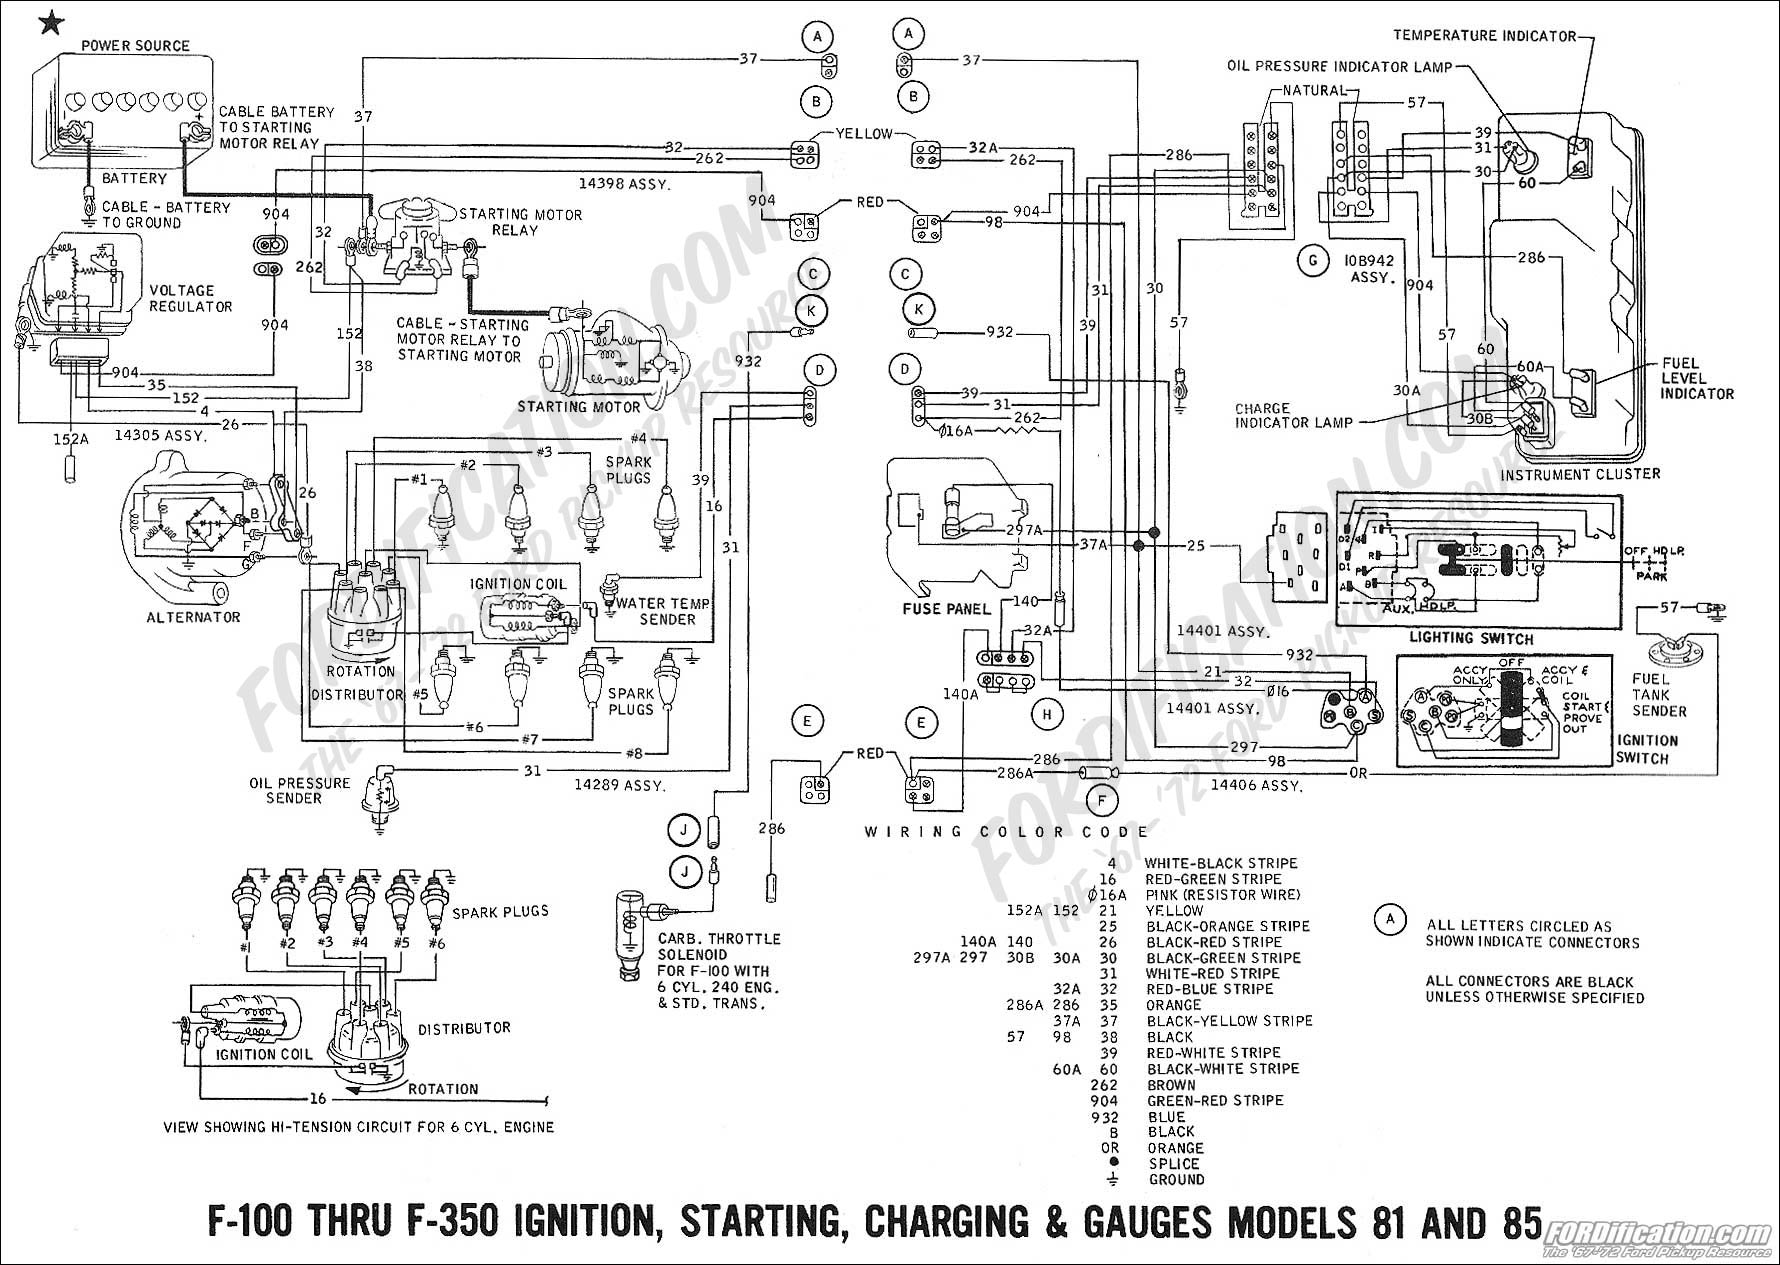 1968 ford wiring diagram wiring data diagram rh 4 meditativ wandern de